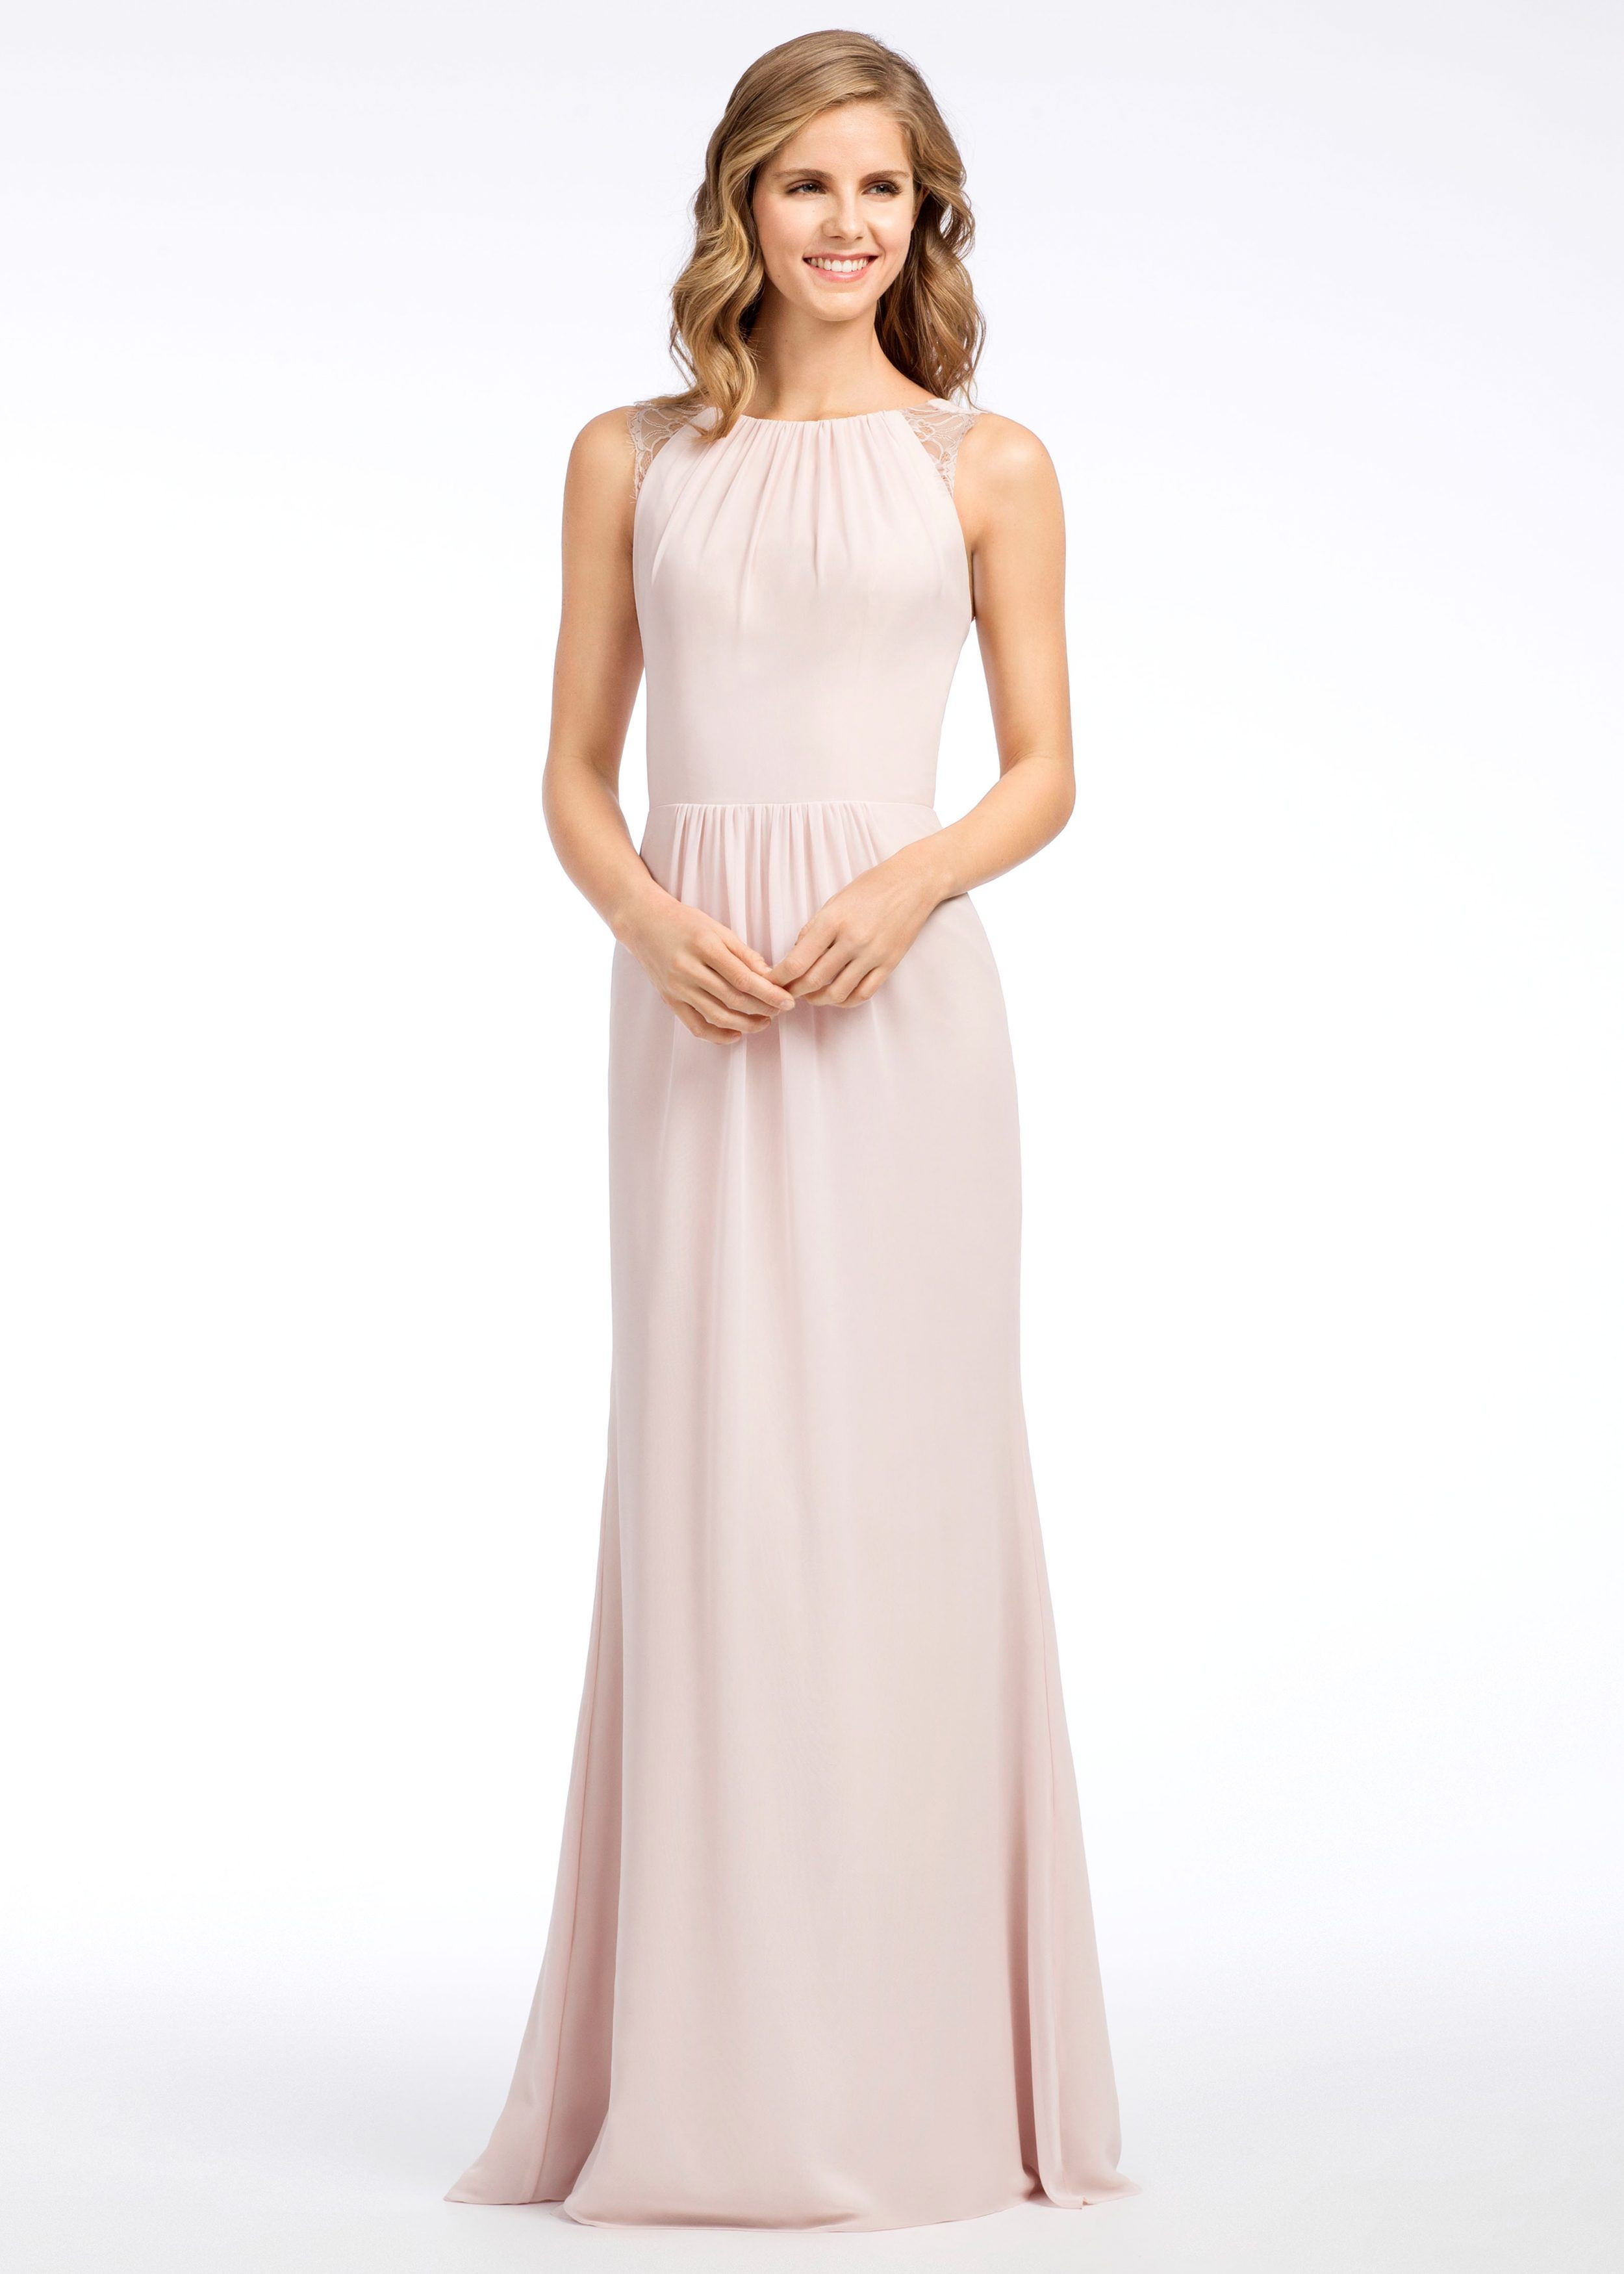 Hayley paige occasions style blush bridesmaids dresses